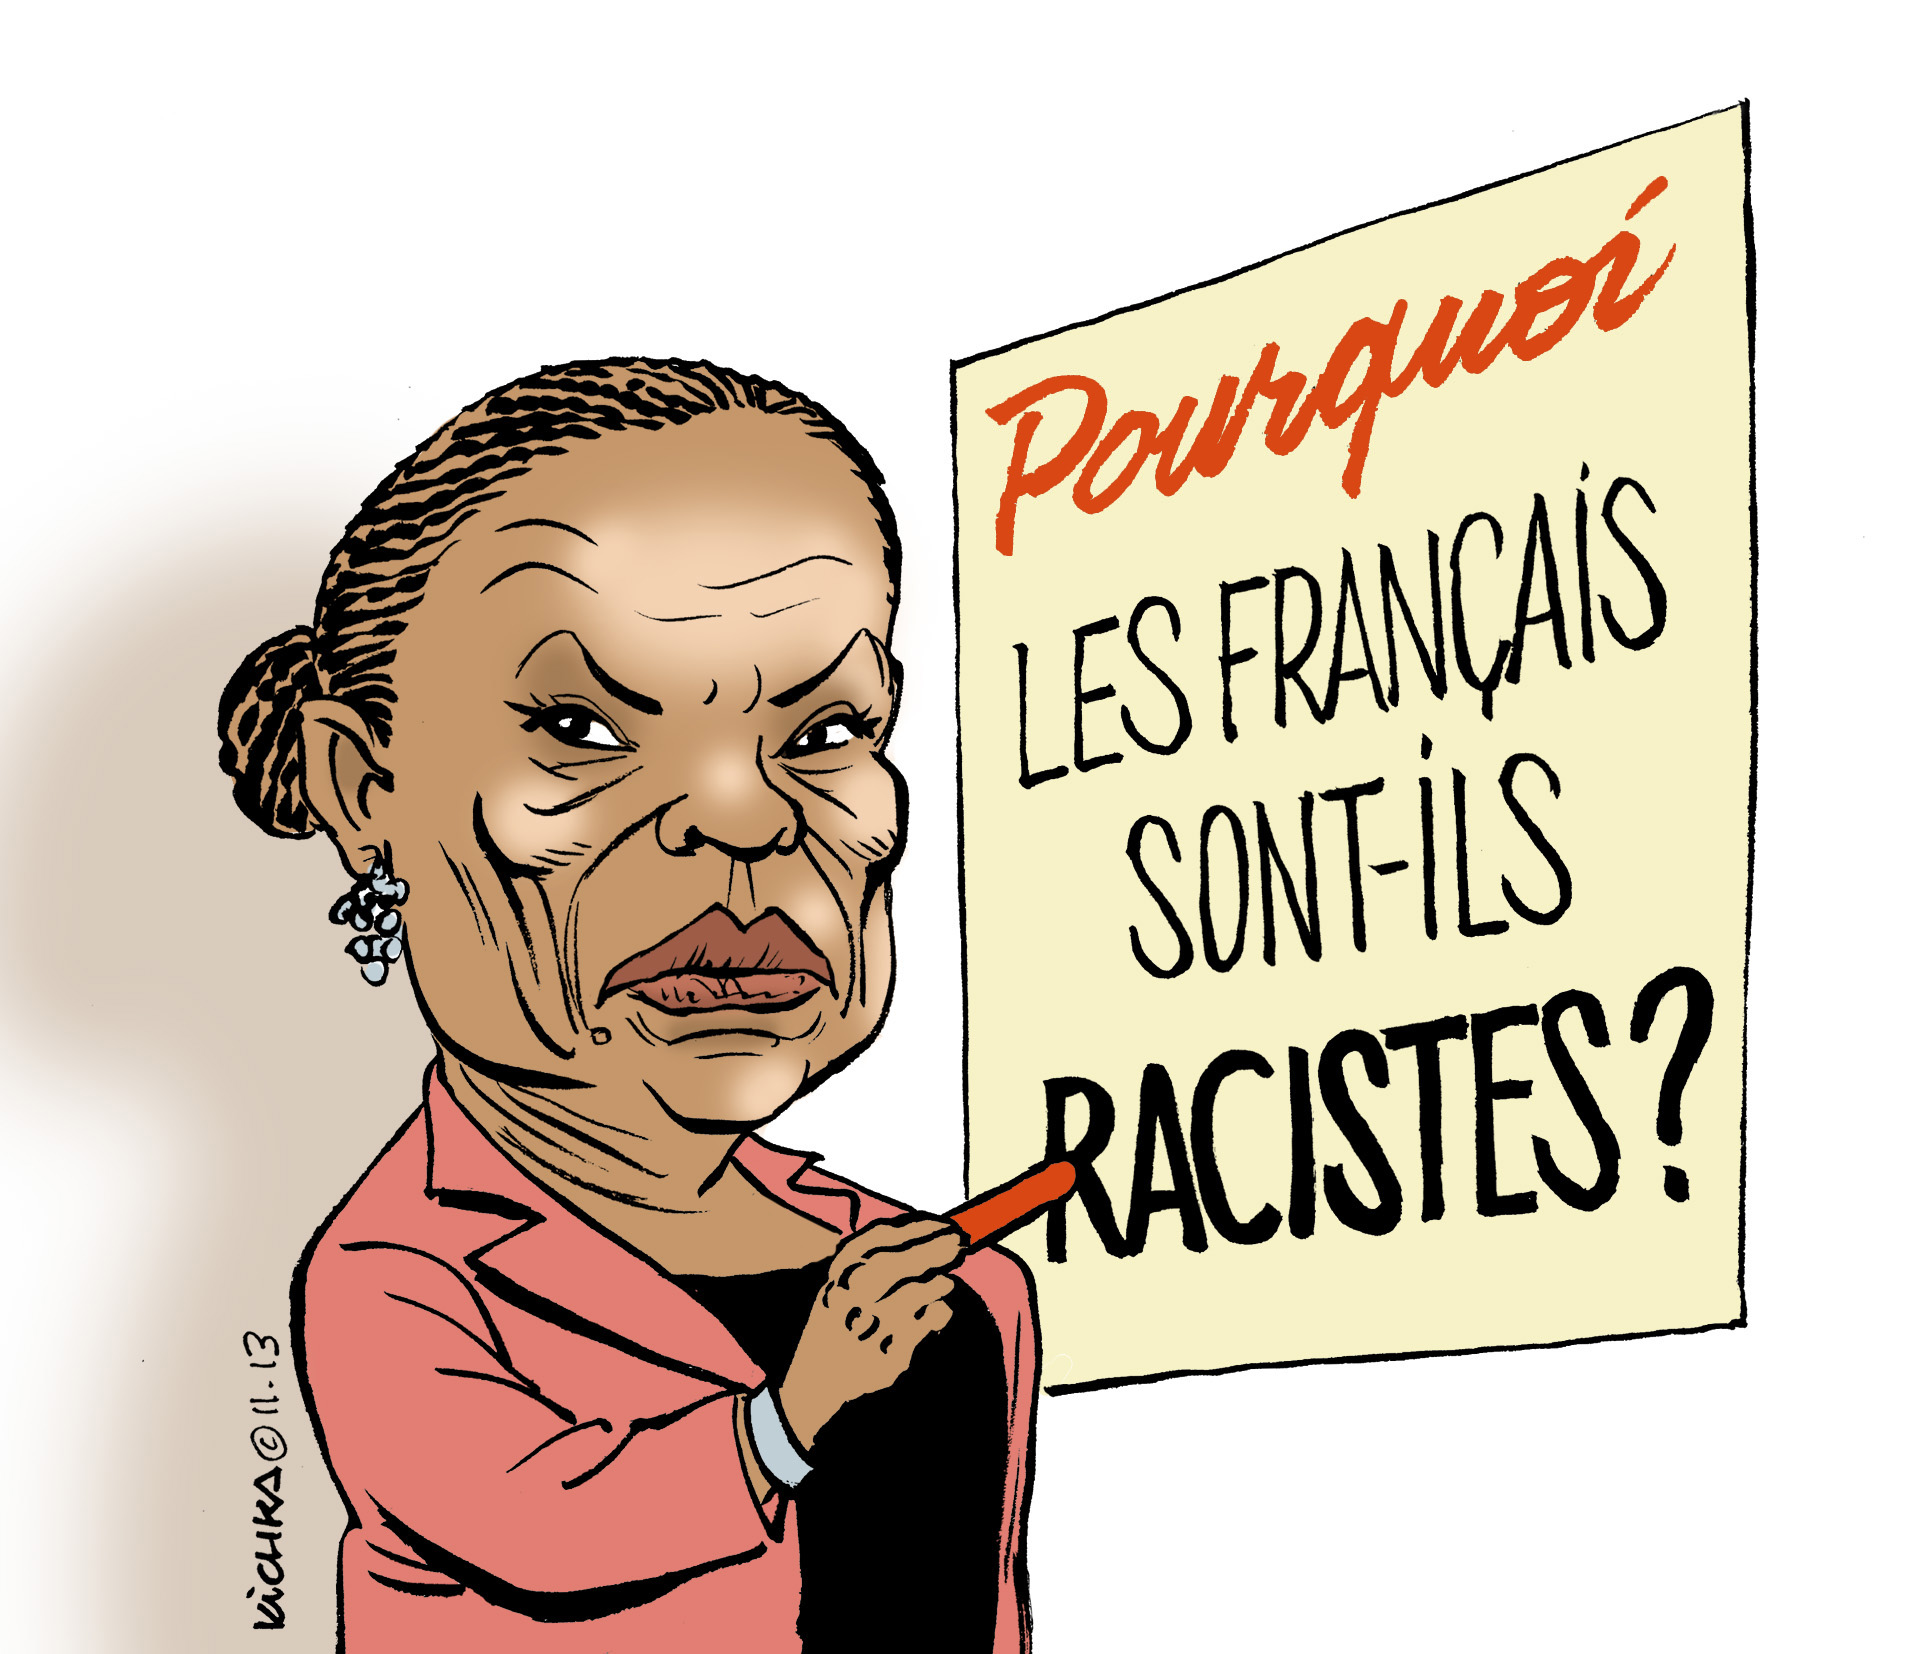 Le racisme anti-blancs en images…